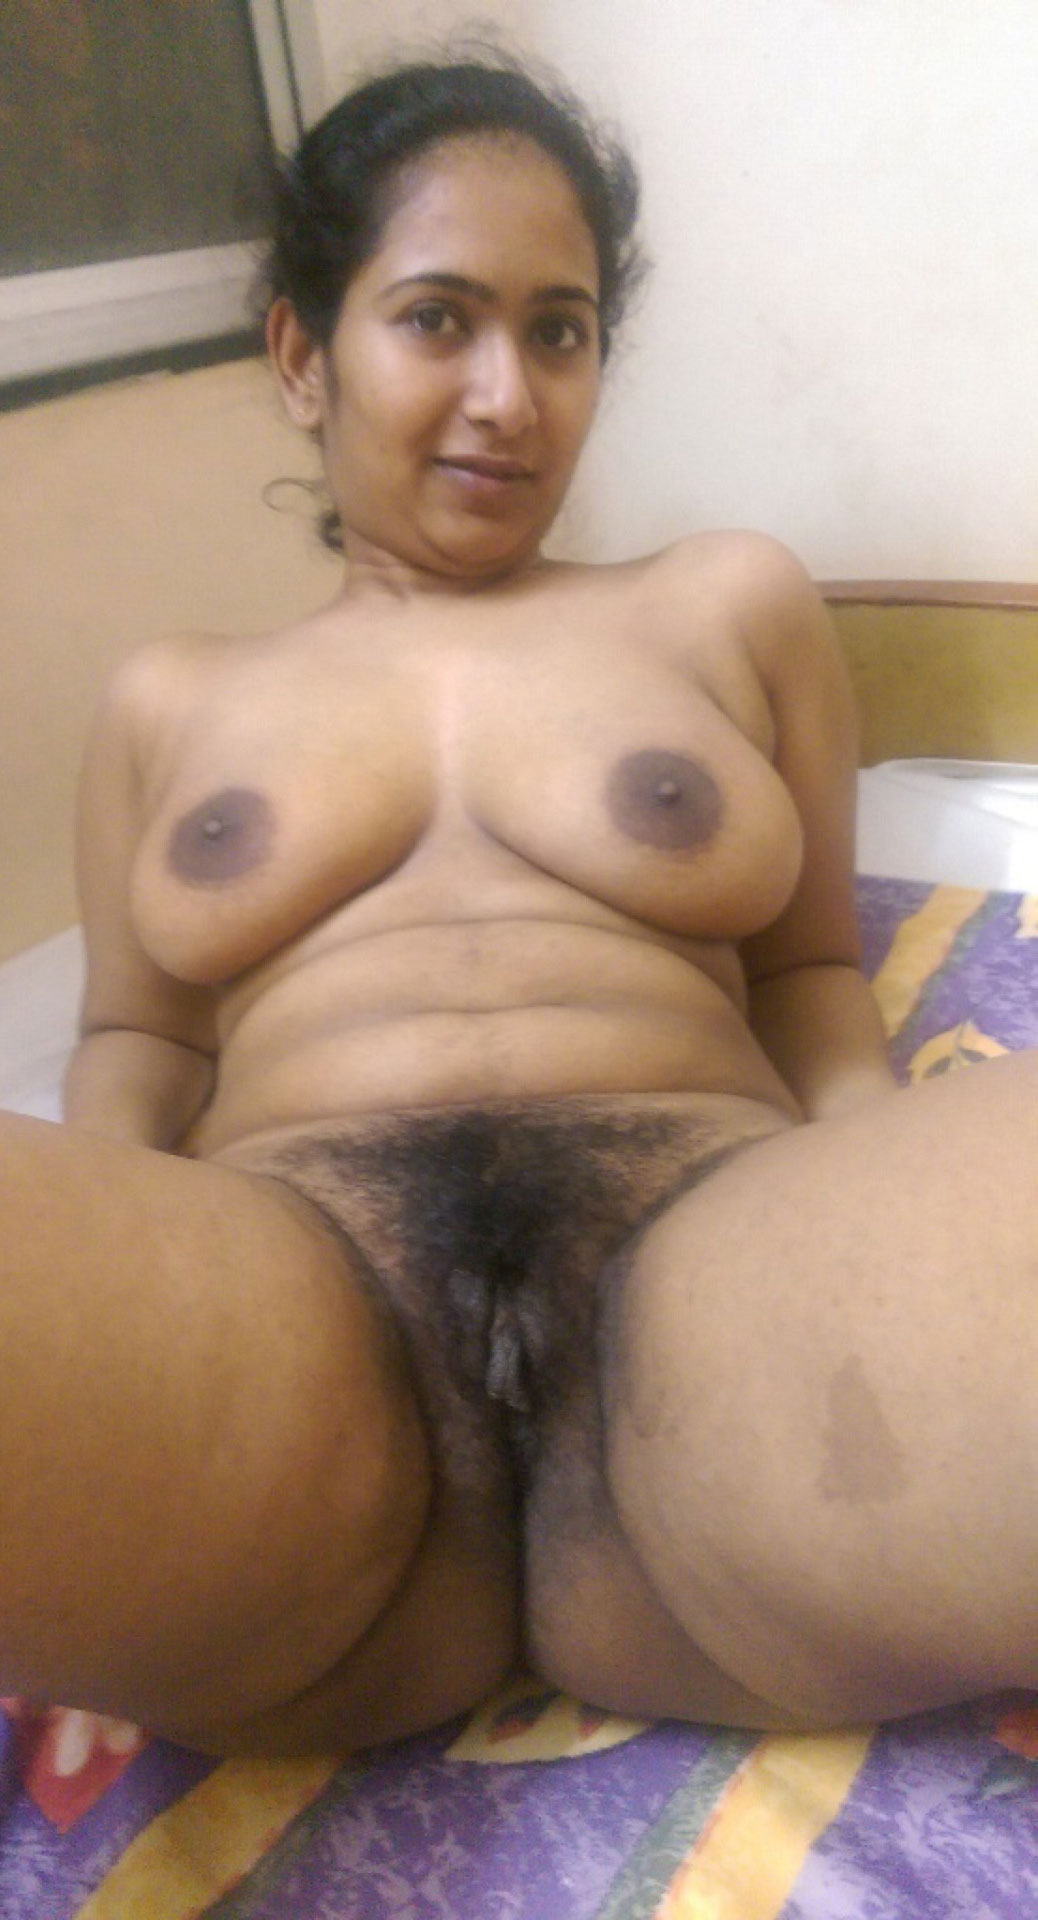 Hairy milf pic agree with